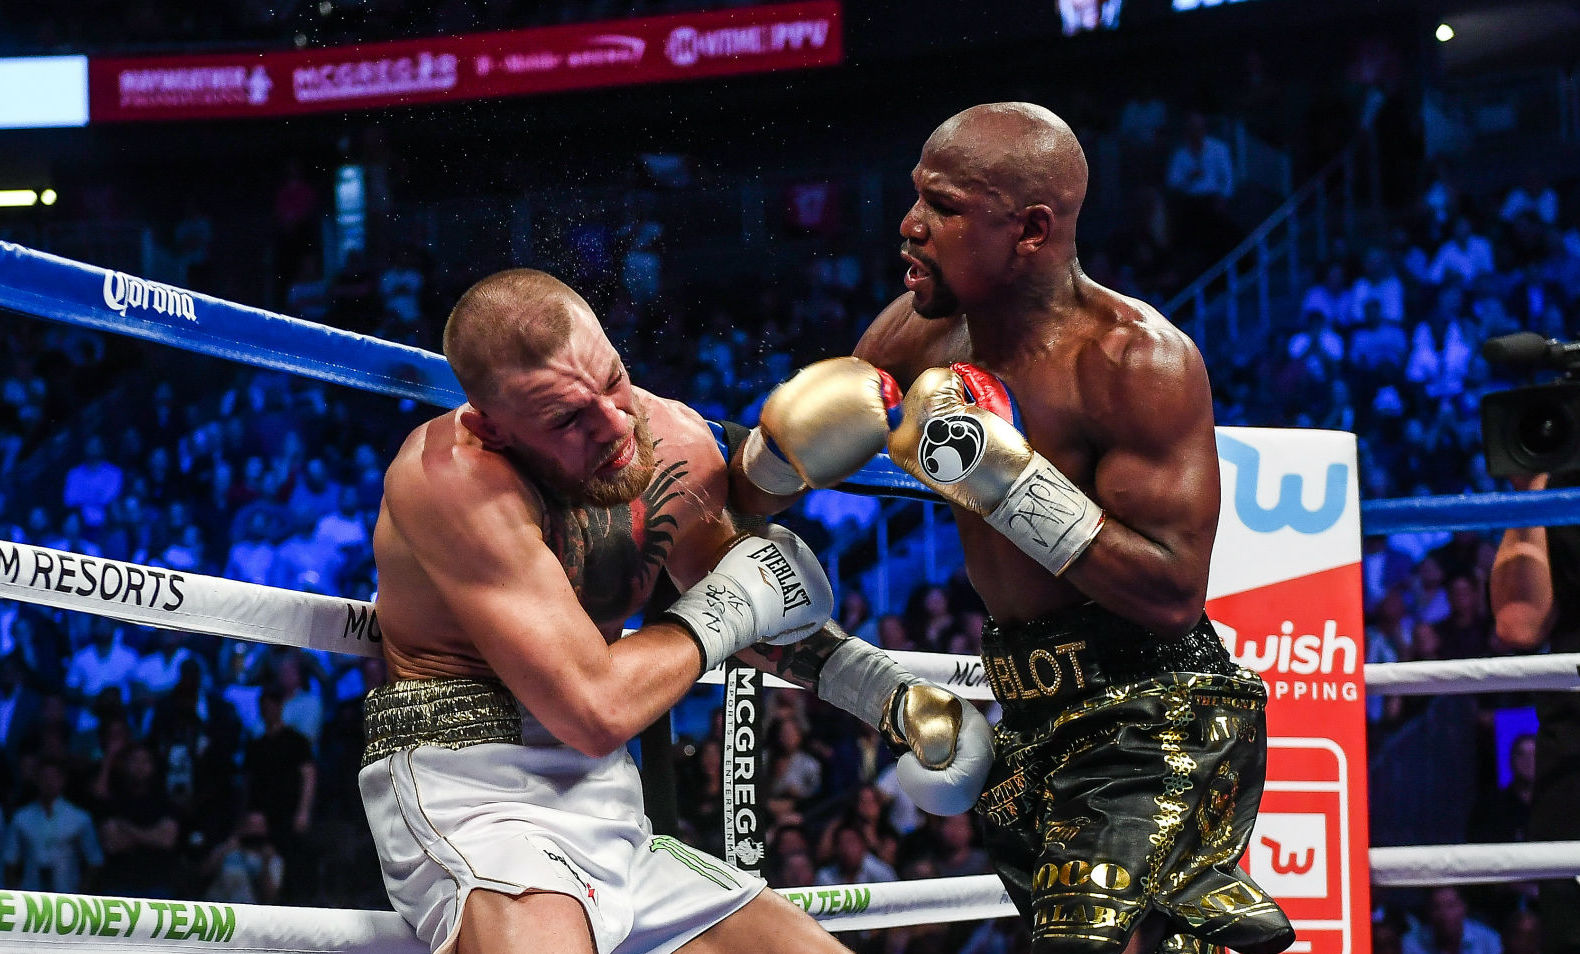 juego James Dyson Pensionista  Floyd Mayweather Knocks Out Conor McGregor in Custom Adidas Boots | Sole  Collector